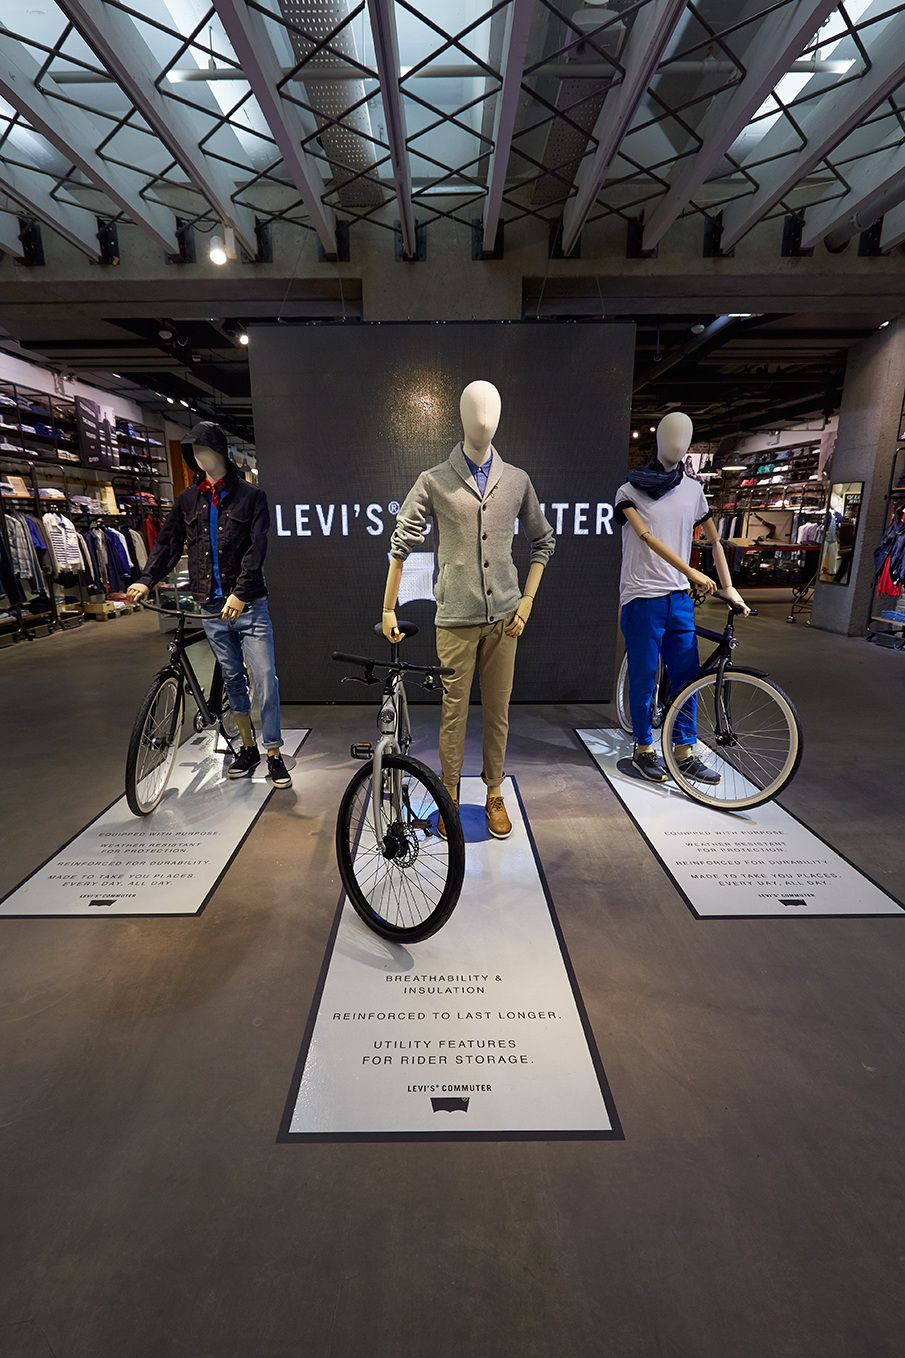 """LEVI'S COMMUTER,London, UK, """"Made to take you places every day,all day"""", photo by hmvm.co.uk, pinned by Ton van der Veer ................. I just like that script is laid out before them.... Adventure more"""